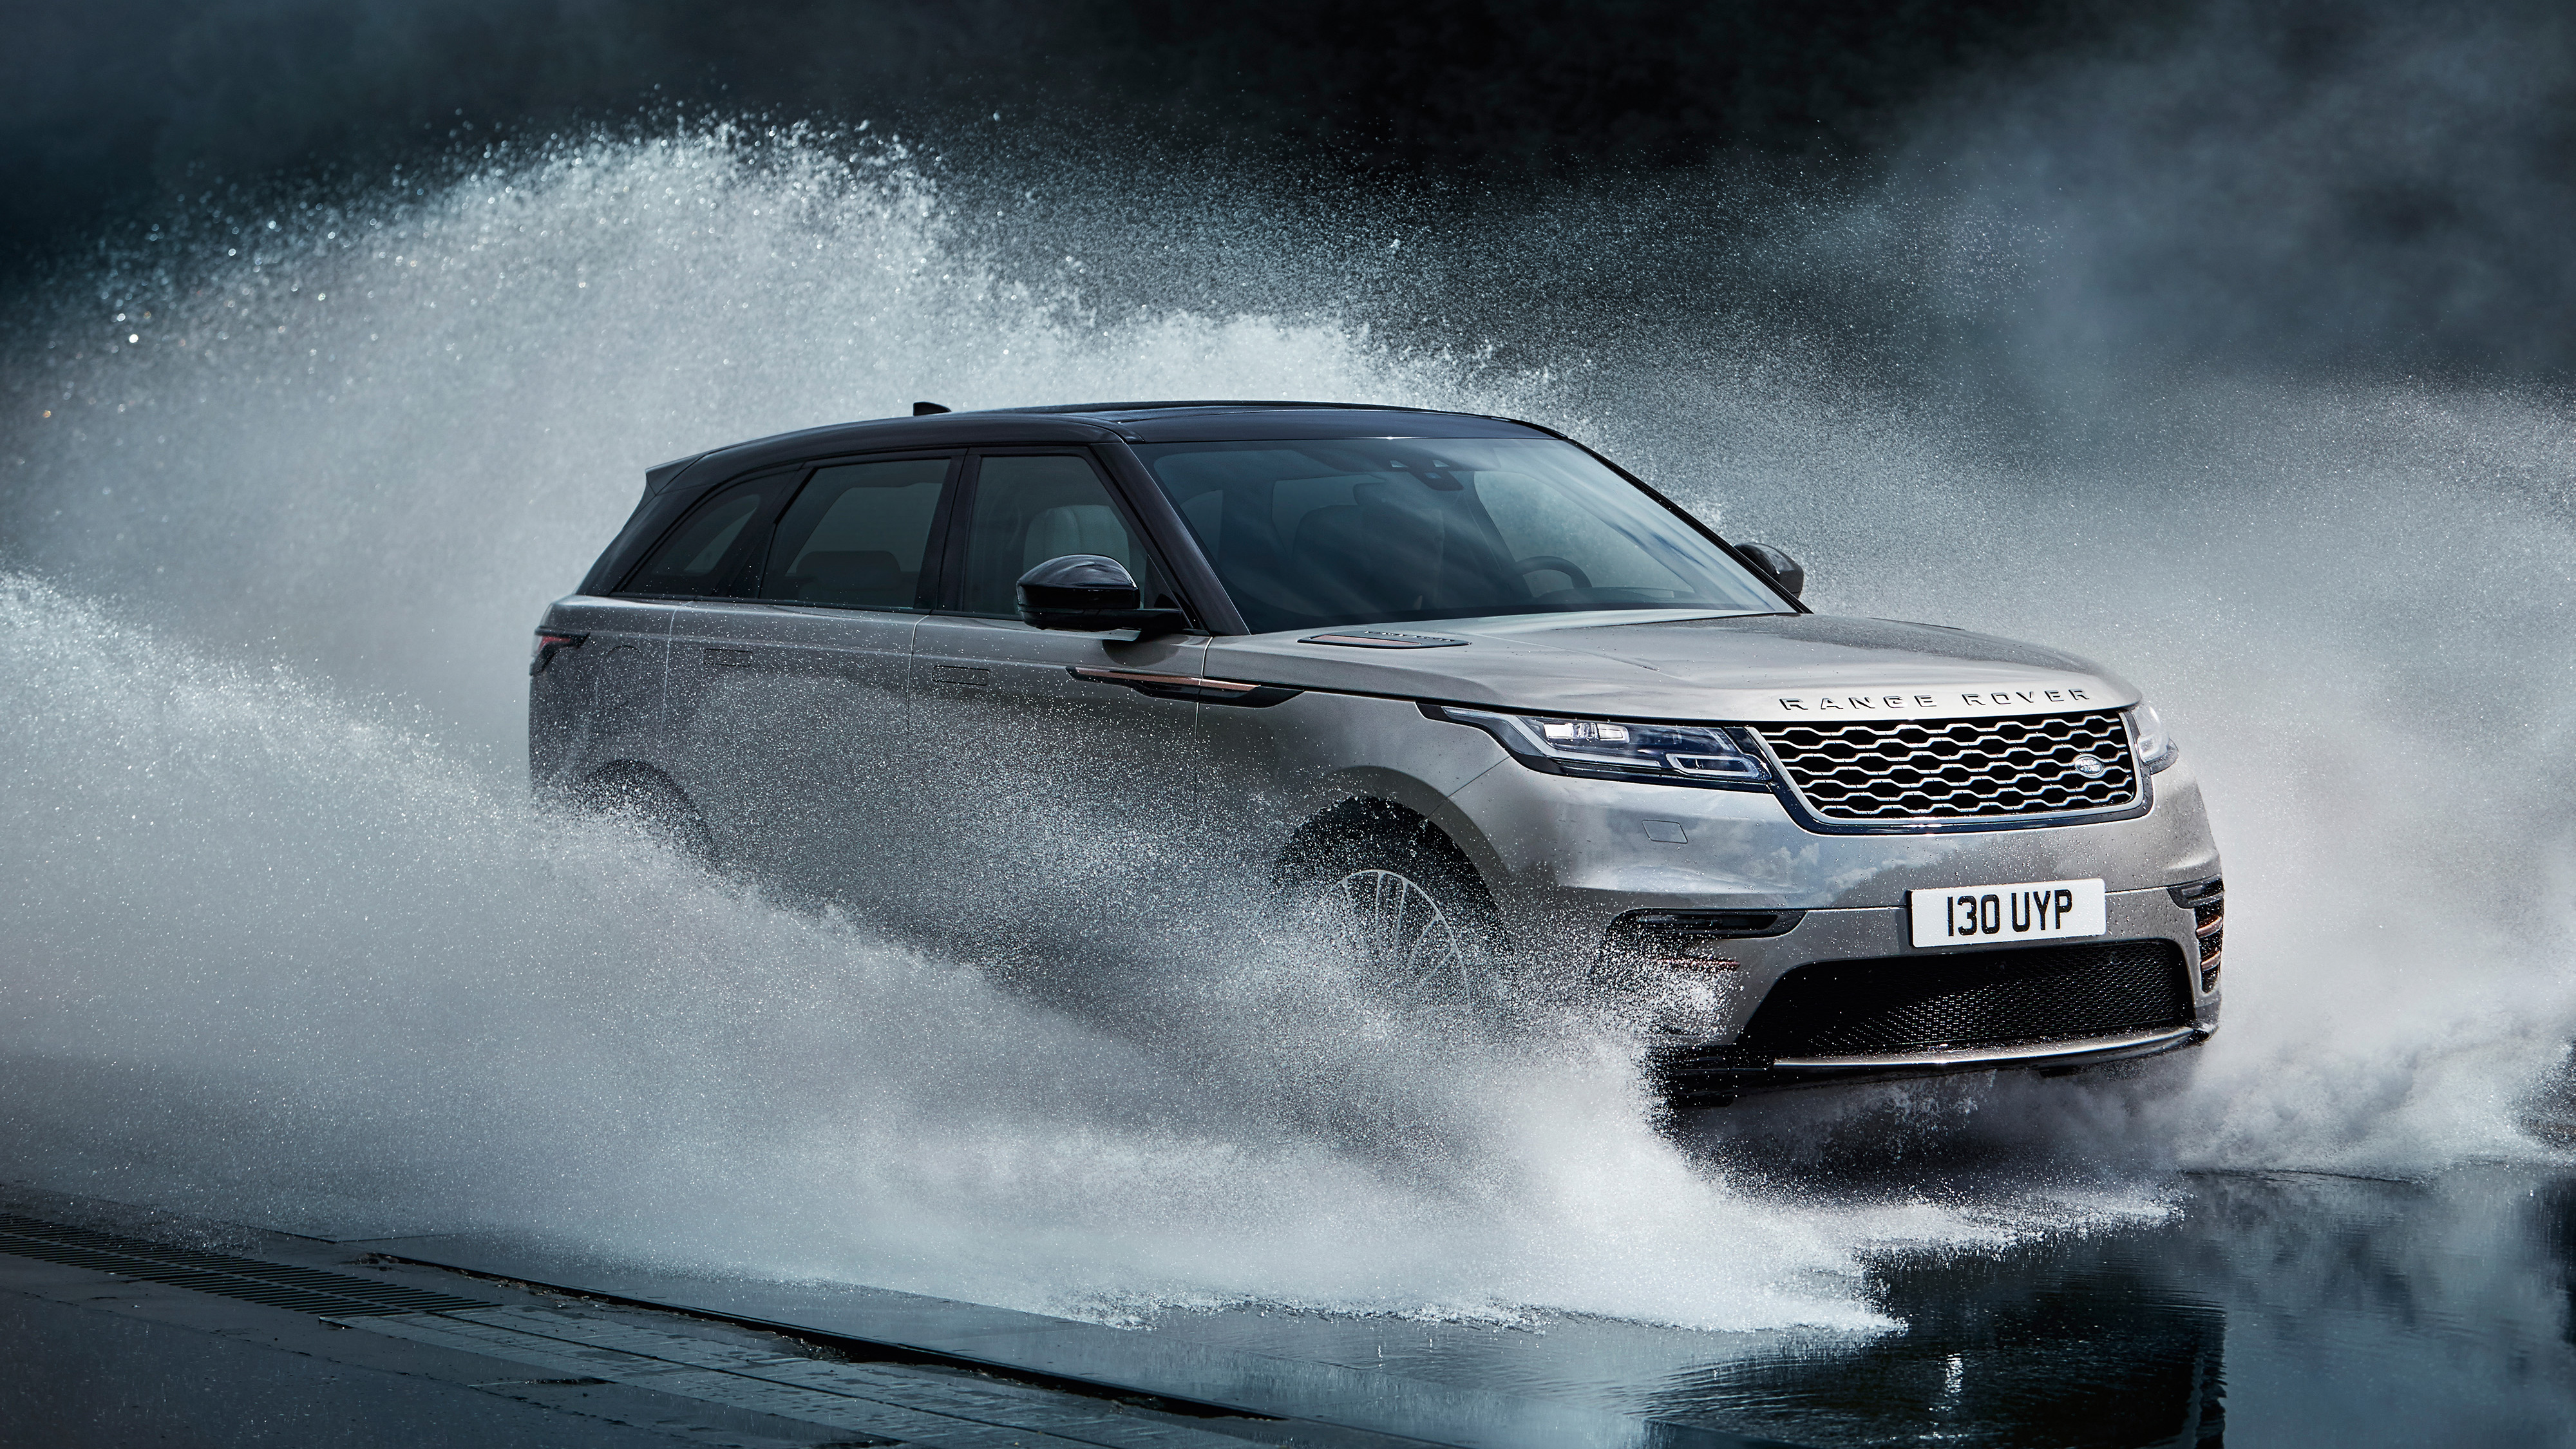 Land Rover Velar >> Range Rover Velar 2018 4k, HD Cars, 4k Wallpapers, Images, Backgrounds, Photos and Pictures